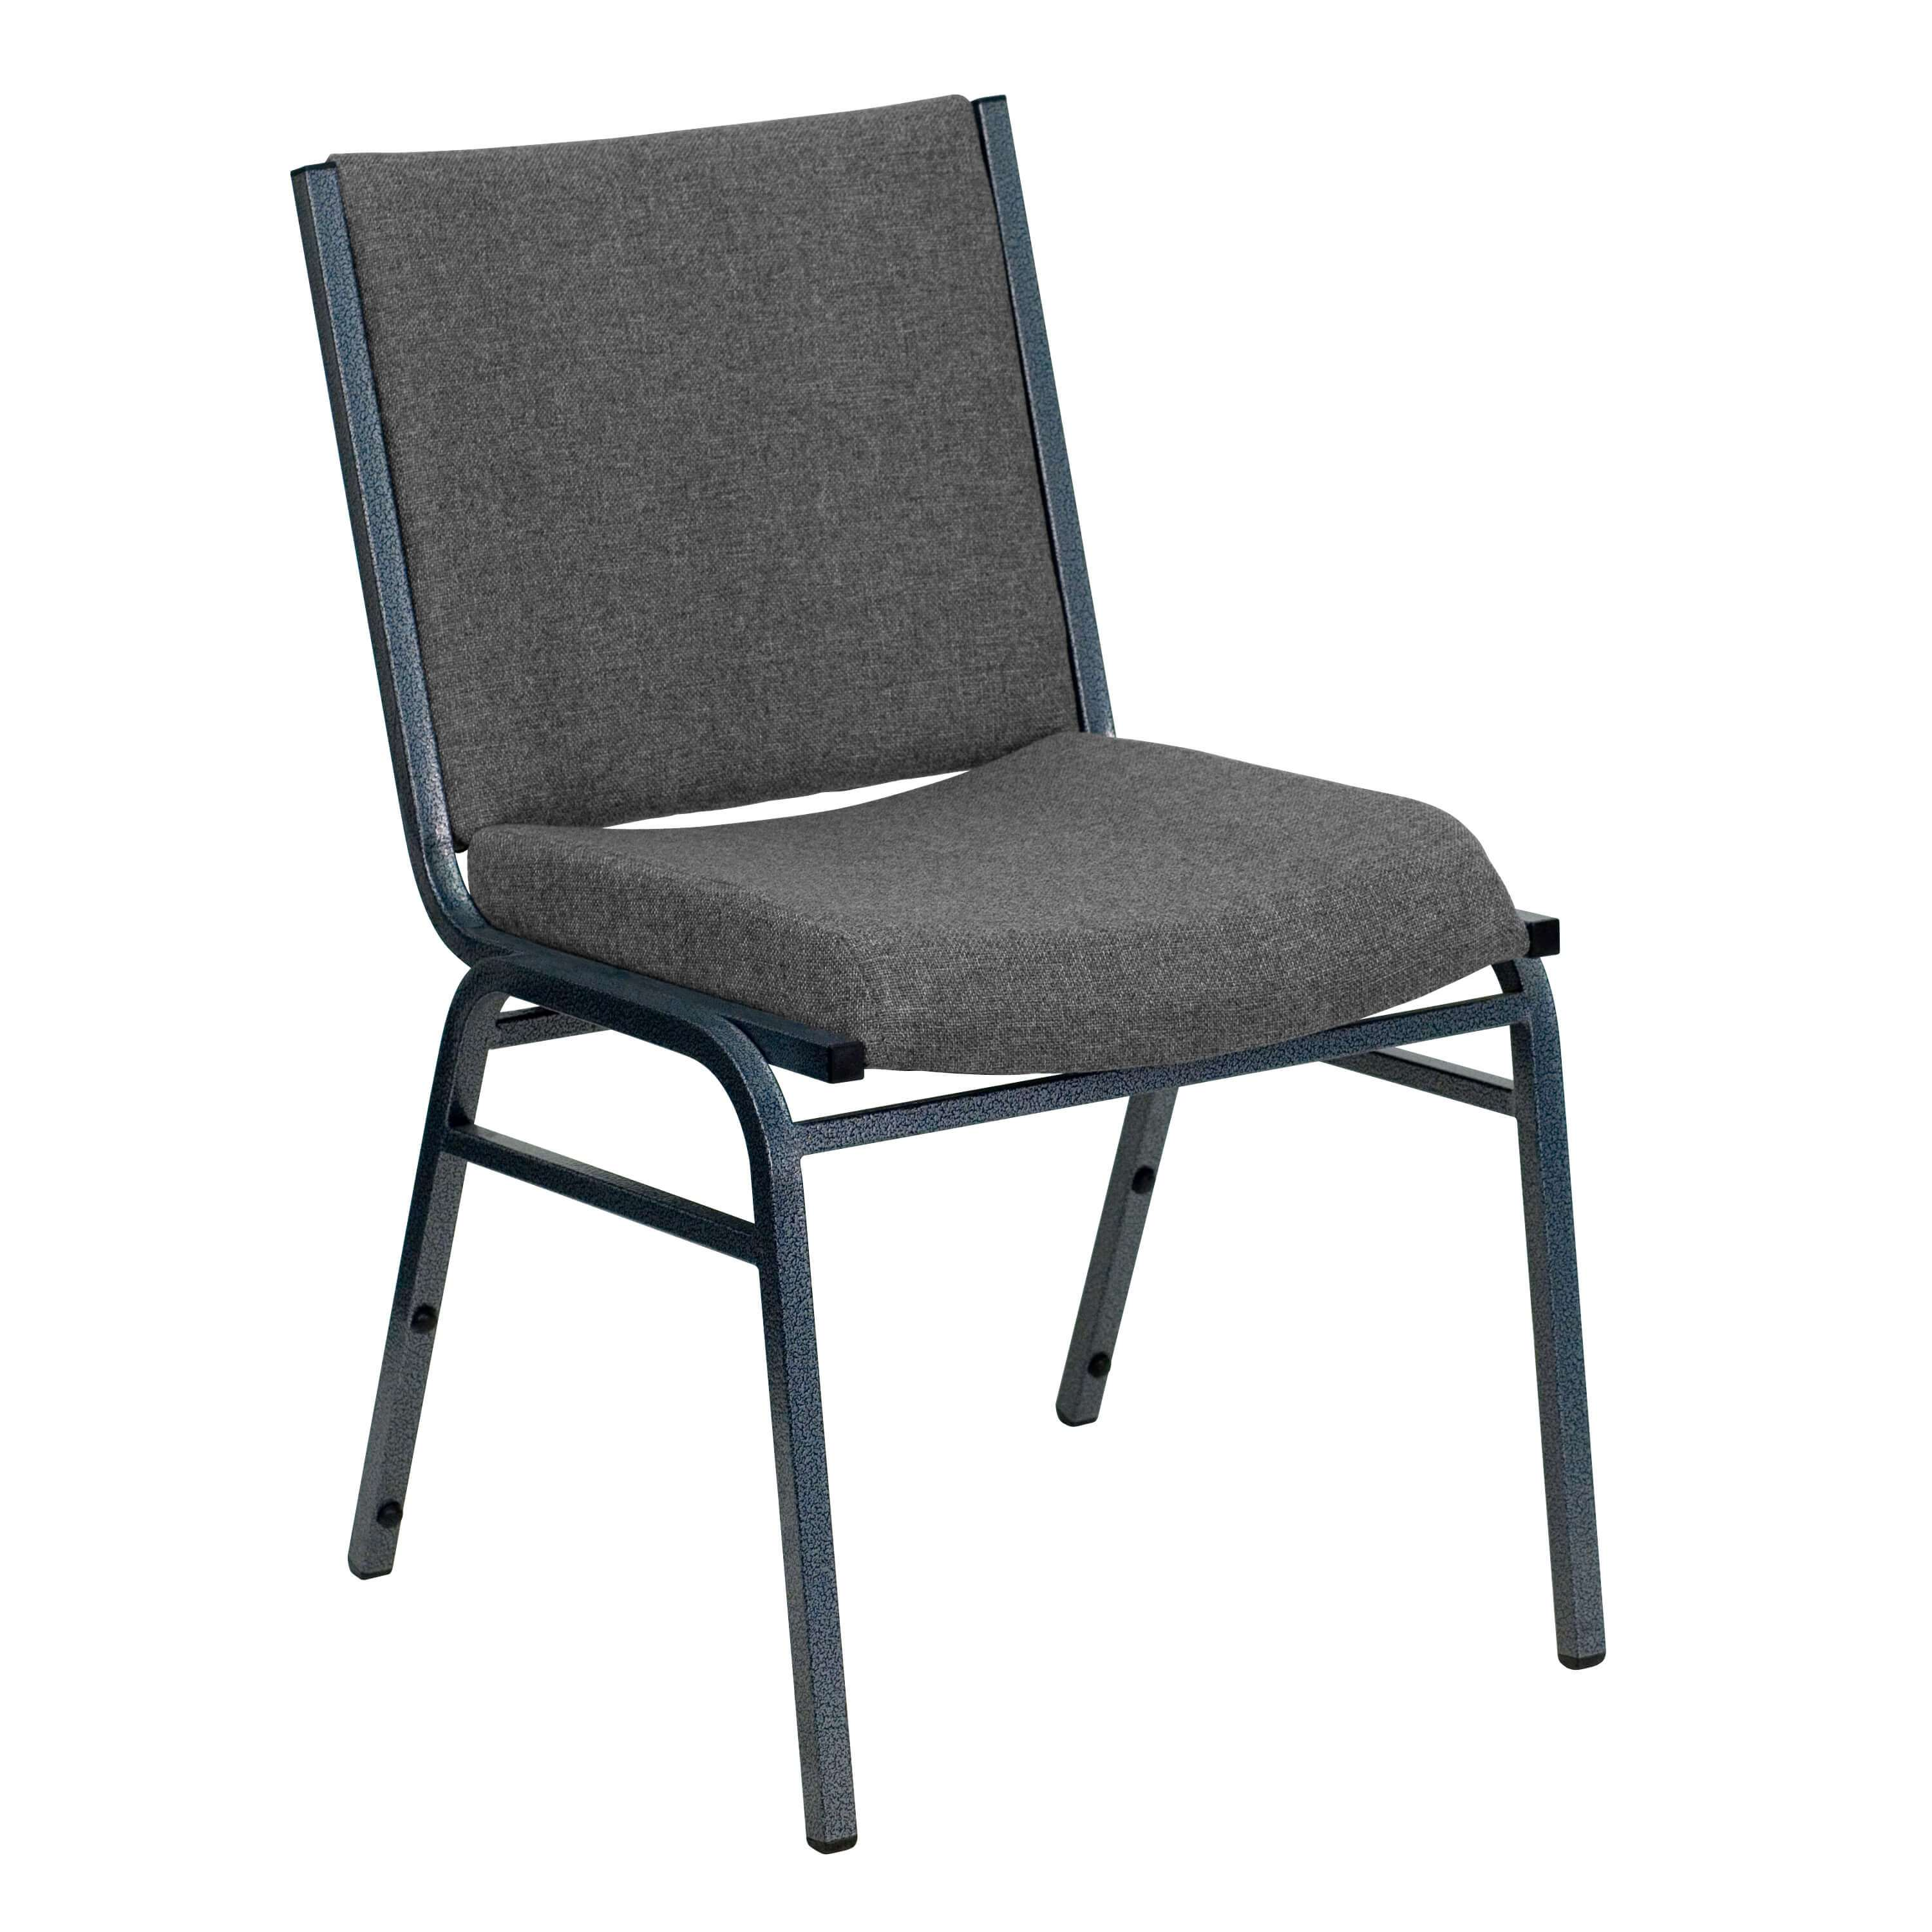 Stackable chairs CUB XU 60153 GY GG FLA